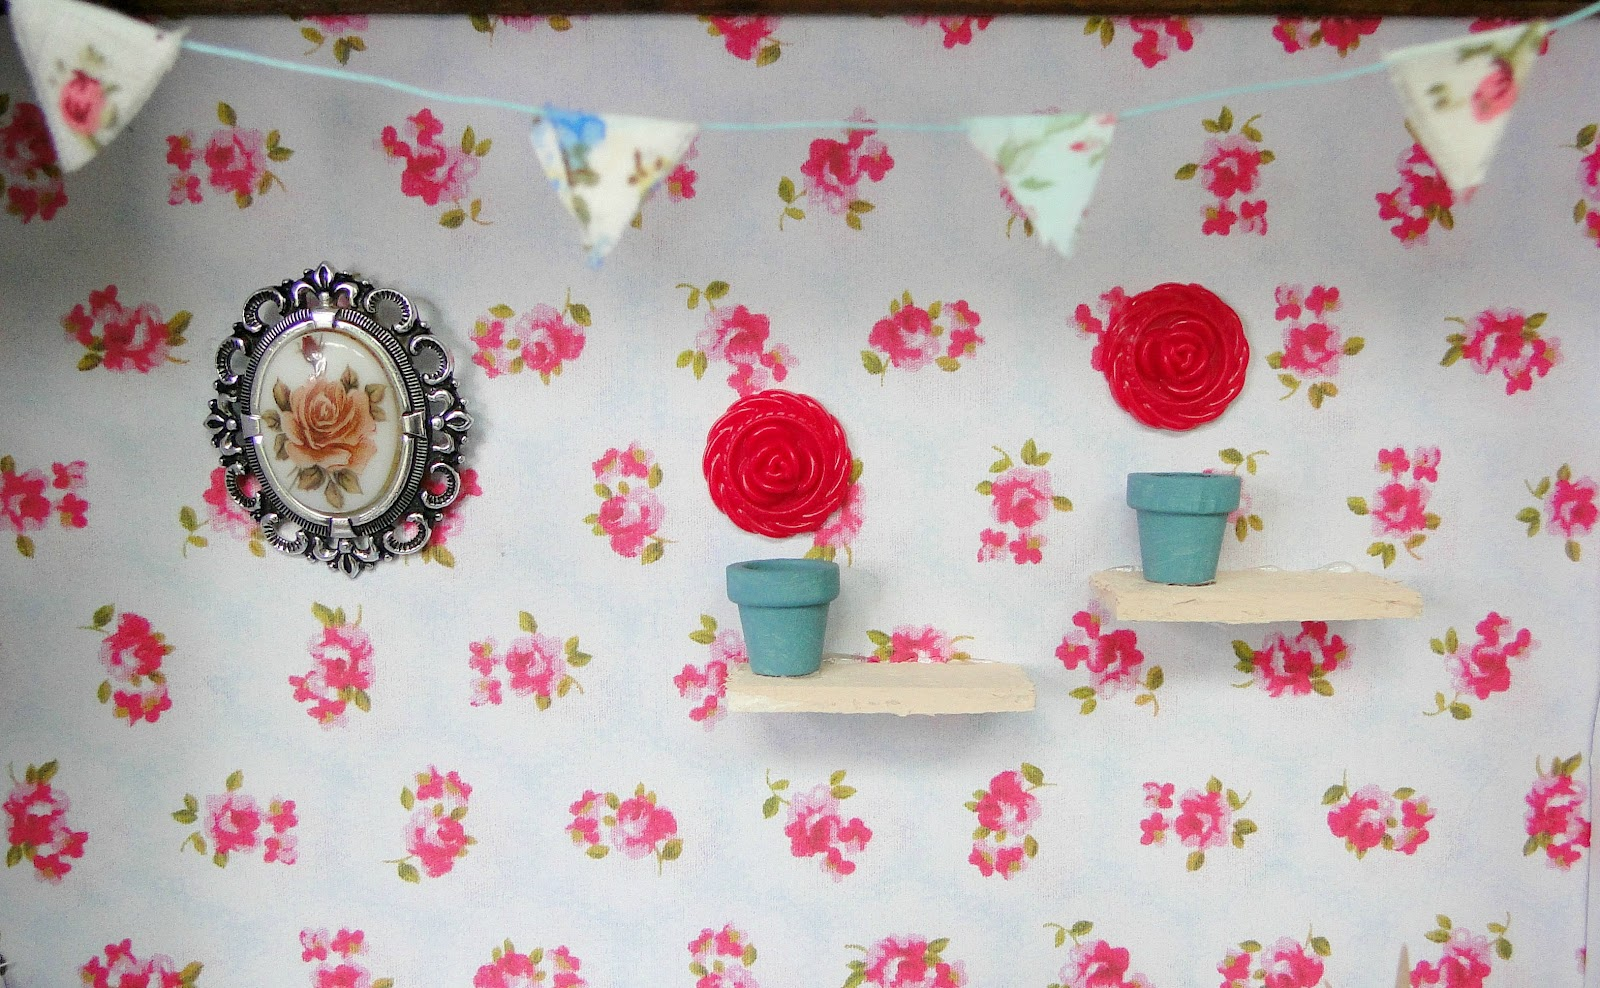 Cath Kidston 'Make Your Dream Room in a Shoebox' Competition Entry